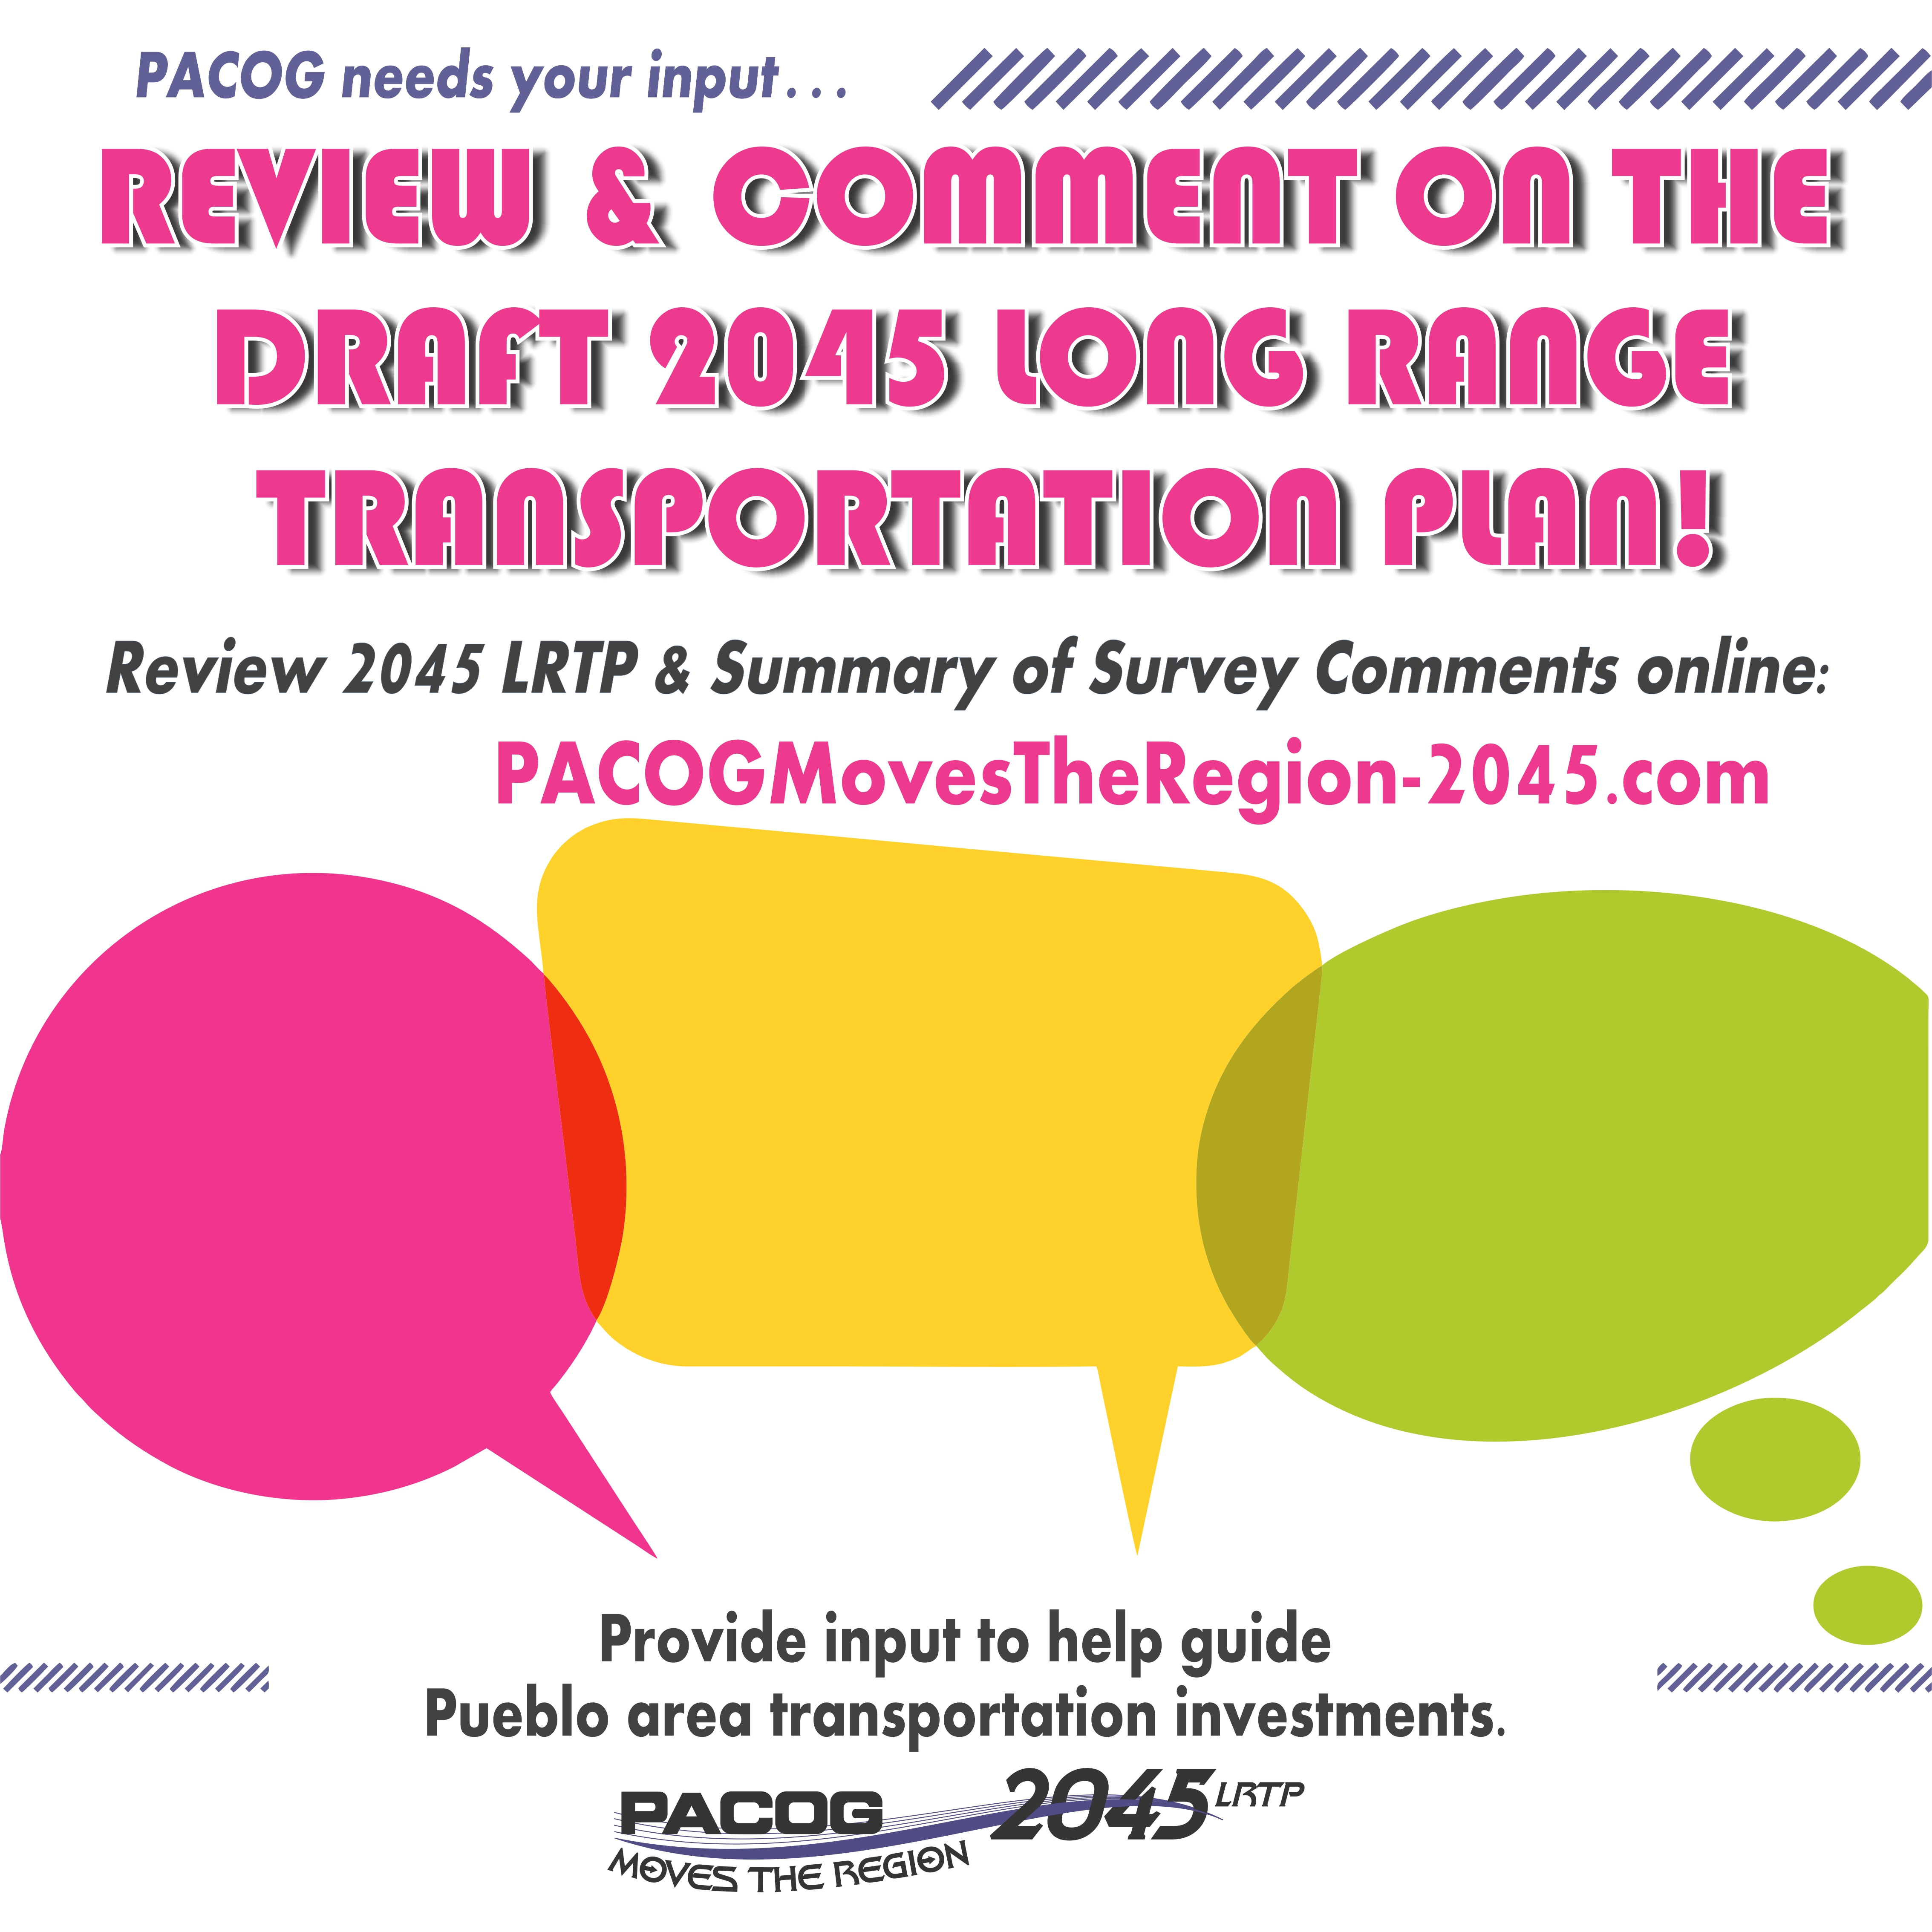 Public Comment on draft 2045 LRTP